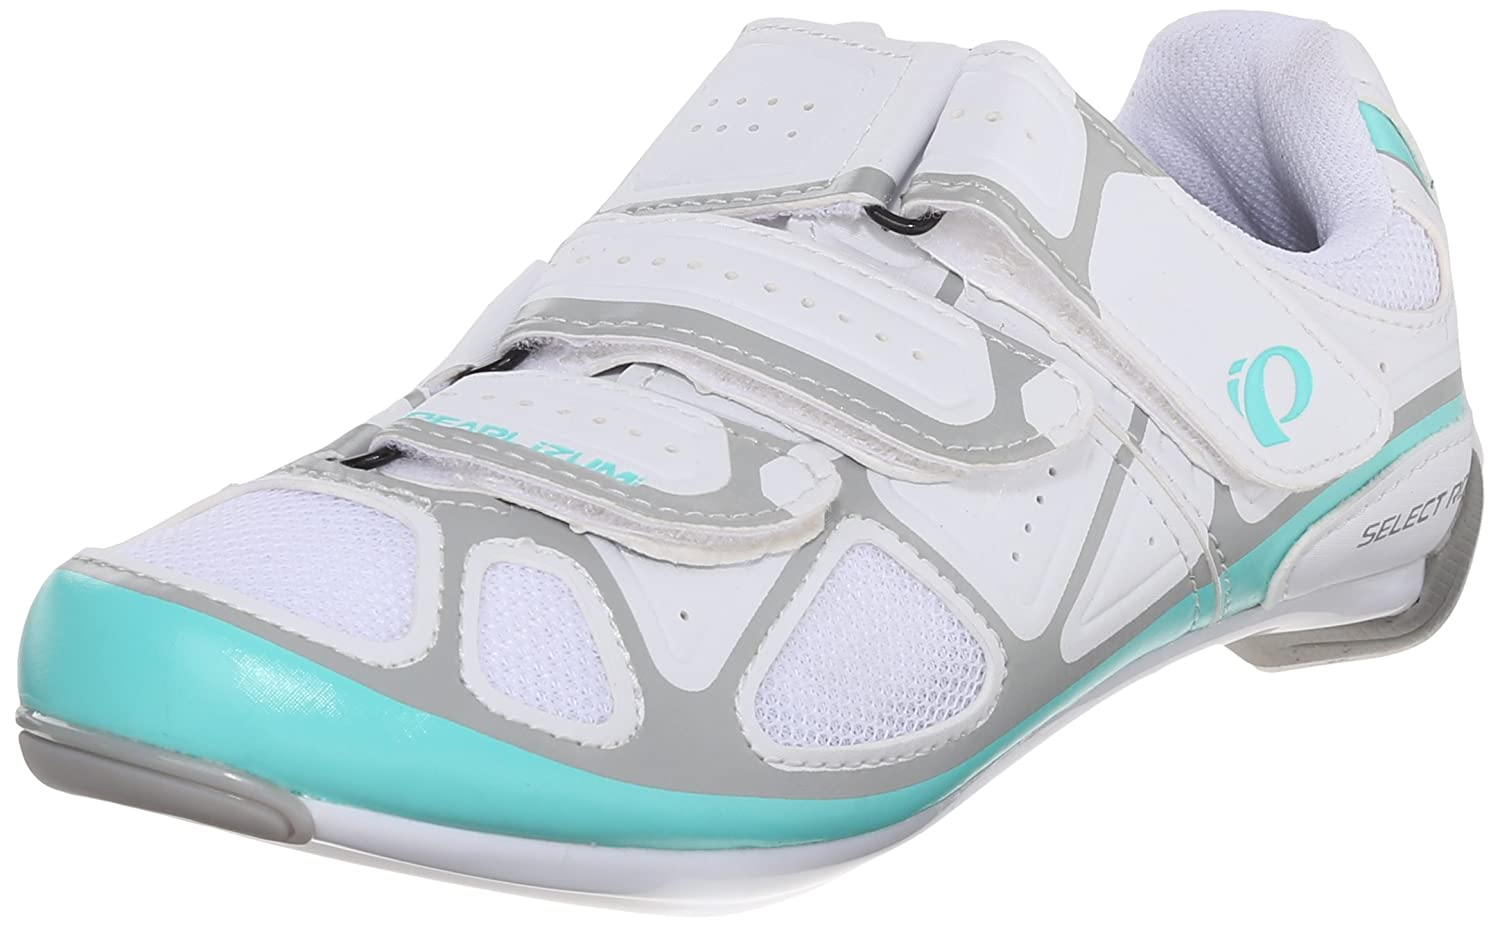 Pearl Izumi Women's W Select RD IV Cycling Shoe Pearl Izumi Cycling Footwear W SELECT RD IV-W